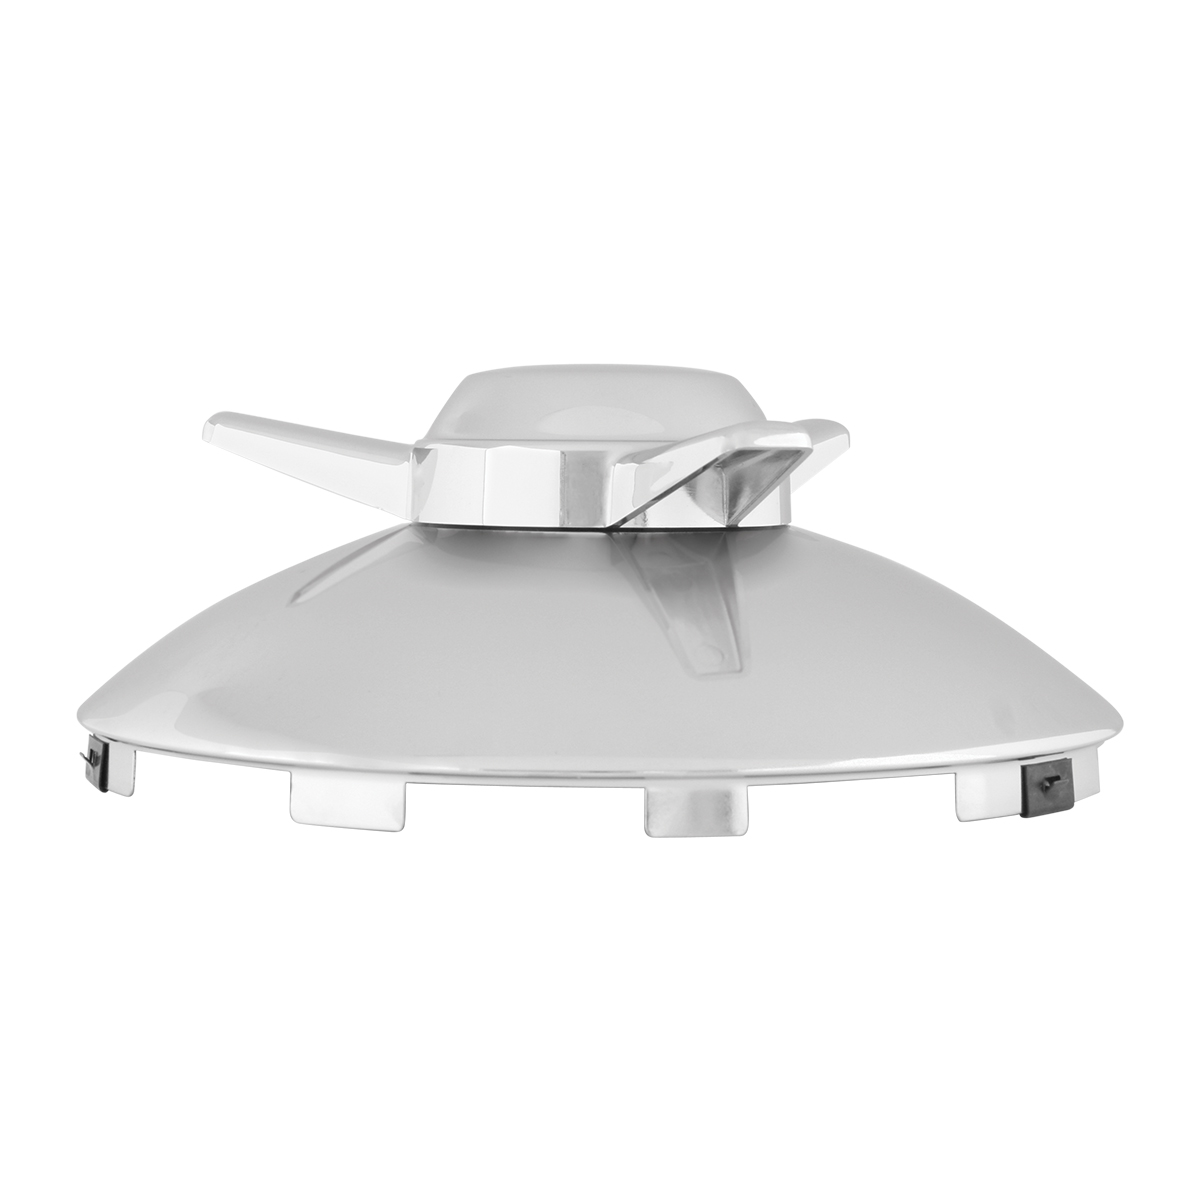 "Universal ⁷∕₁₆"" Front Hub Caps Notched with L/H Swept Wing Spinner - Side View"